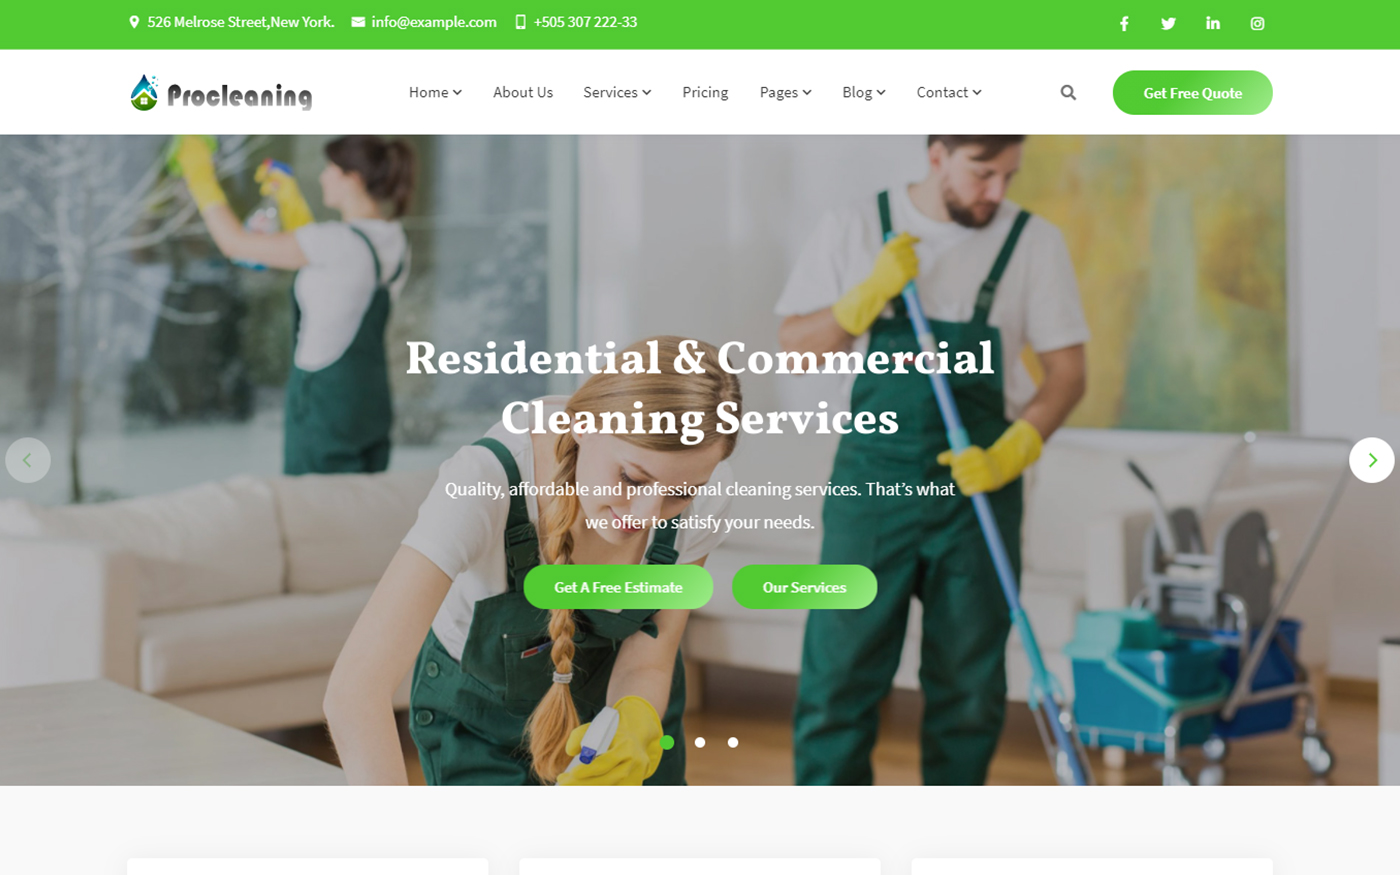 """""""ProCleaning - Cleaning Service & Dry Laundry Website Template"""" 响应式网页模板 #165280"""